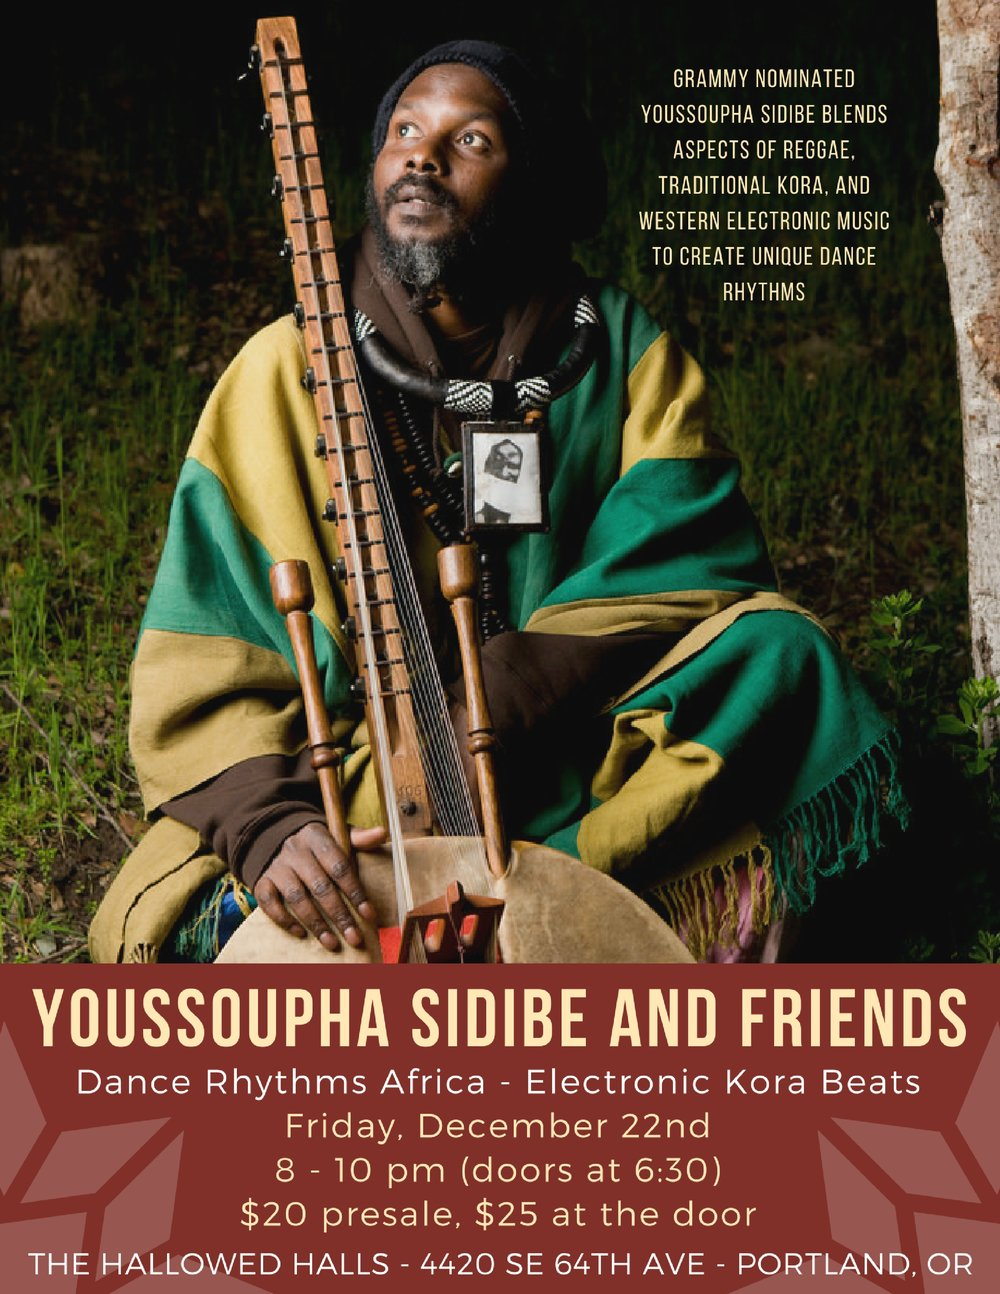 Grammy Nominated Youssoupha Sidibe joins The Hallowed Halls for a night of African Dance.